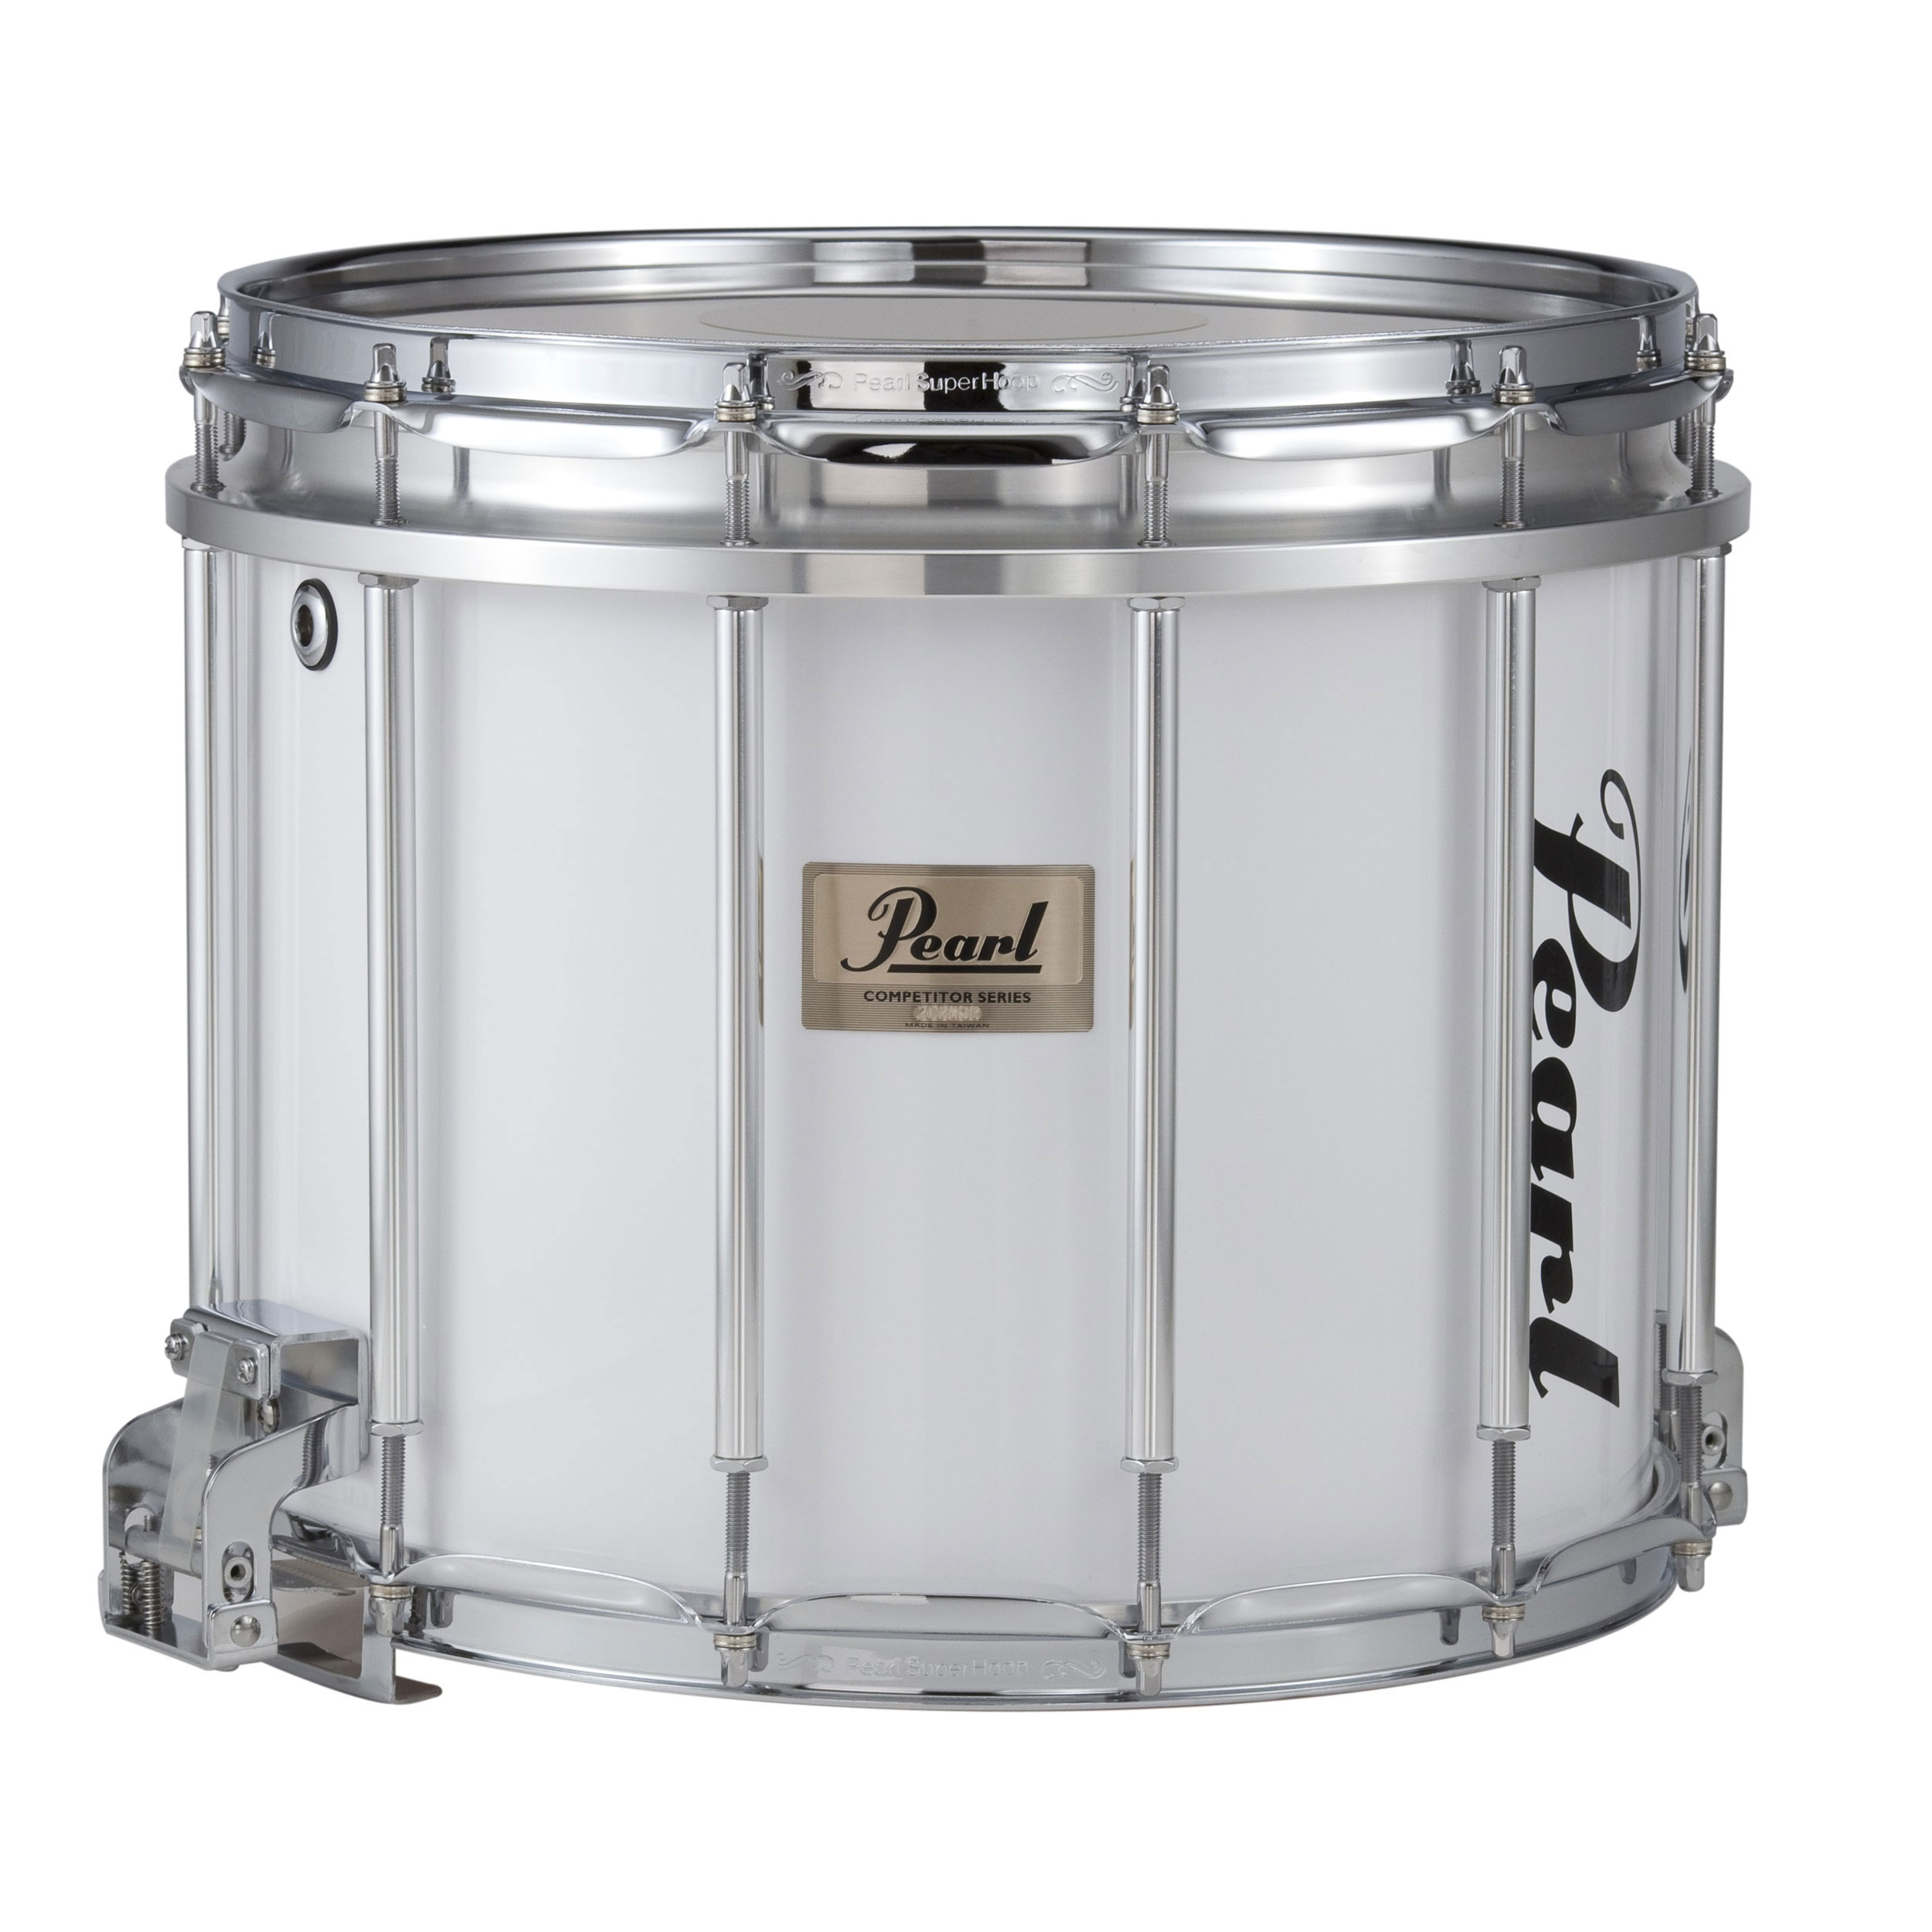 "Pearl 13"" (Diameter) x 11"" (Deep) Competitor High Tension Marching Snare Drum"